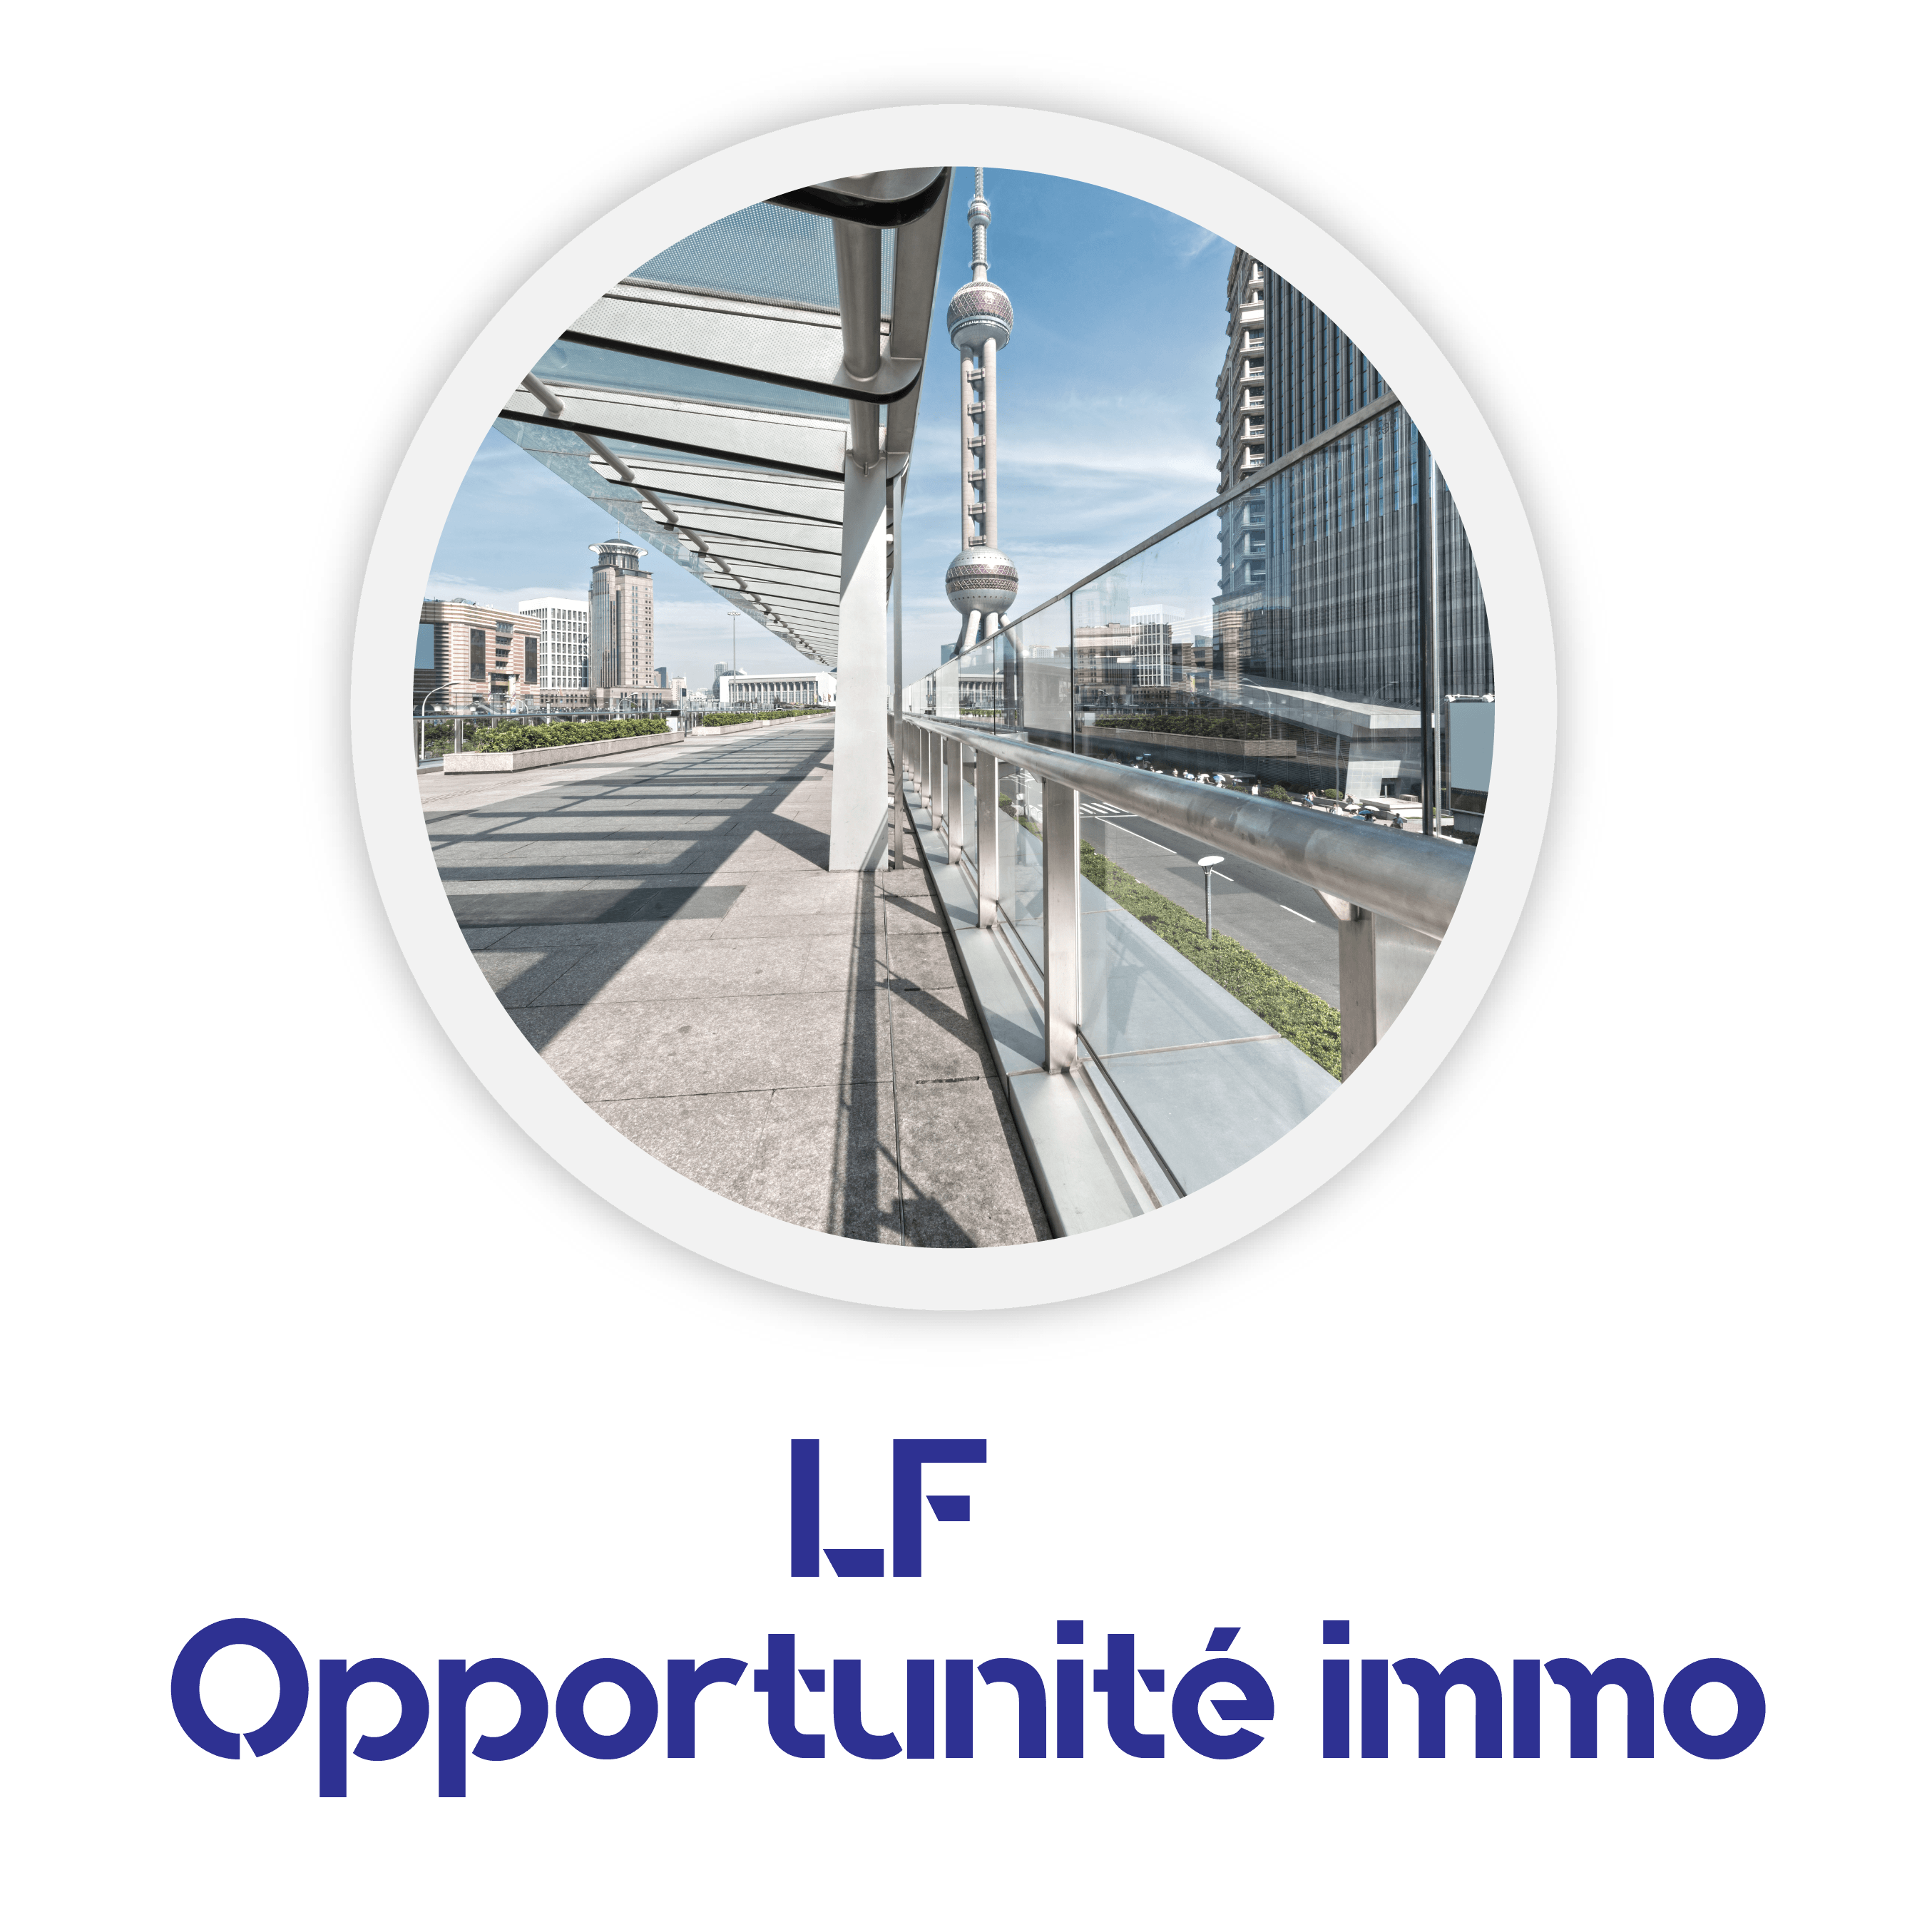 LF Opportunité immo